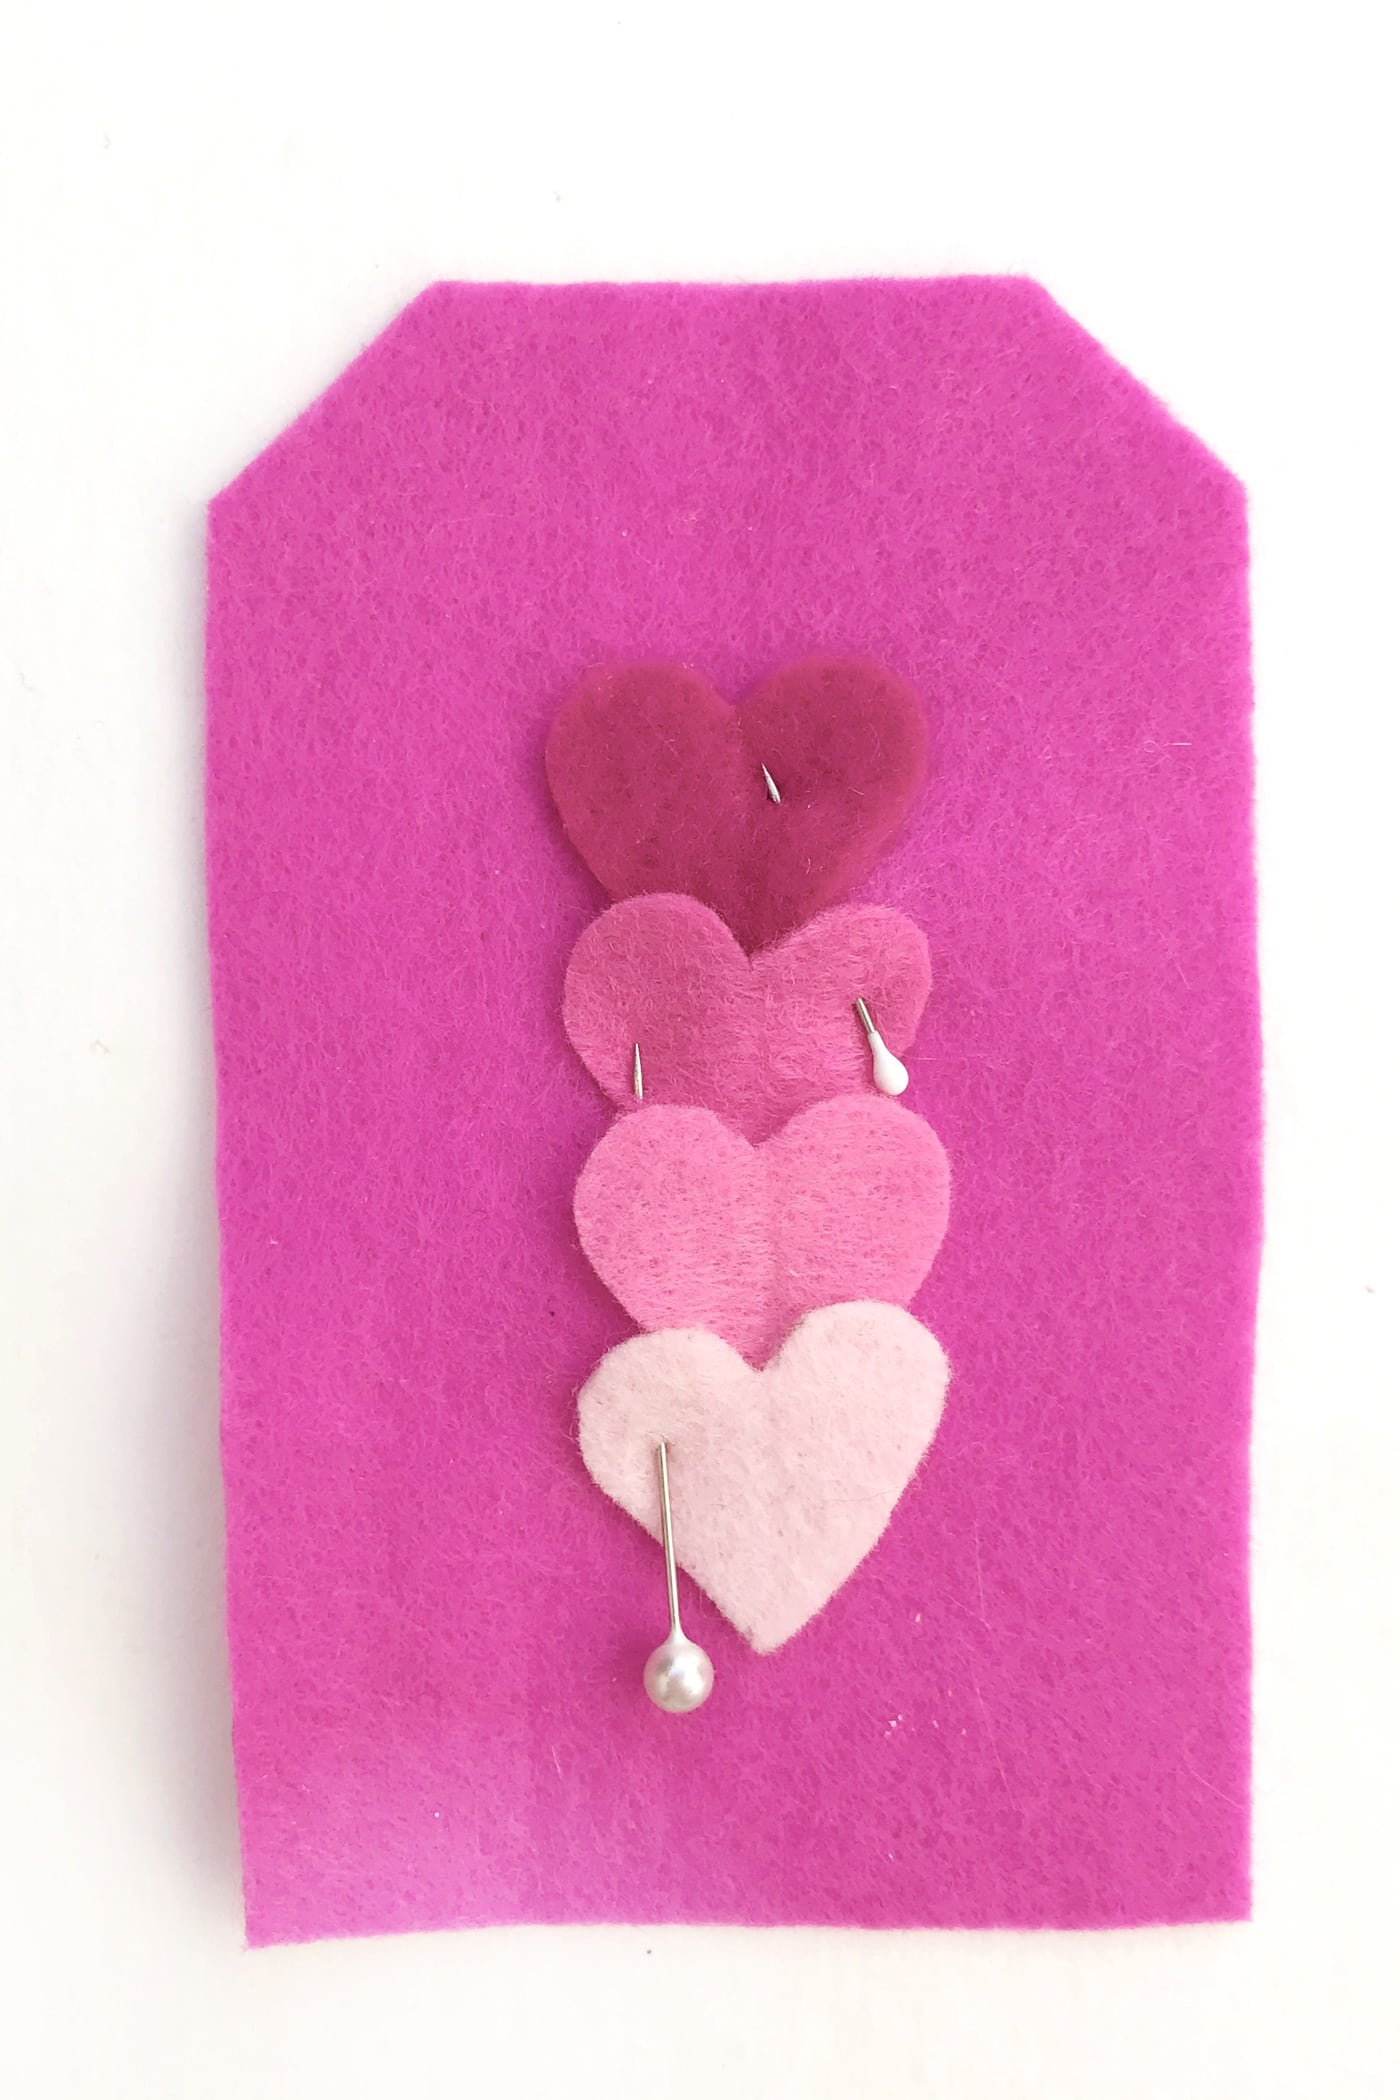 hand embroidered felt gift tags on white table with hearts pinned on